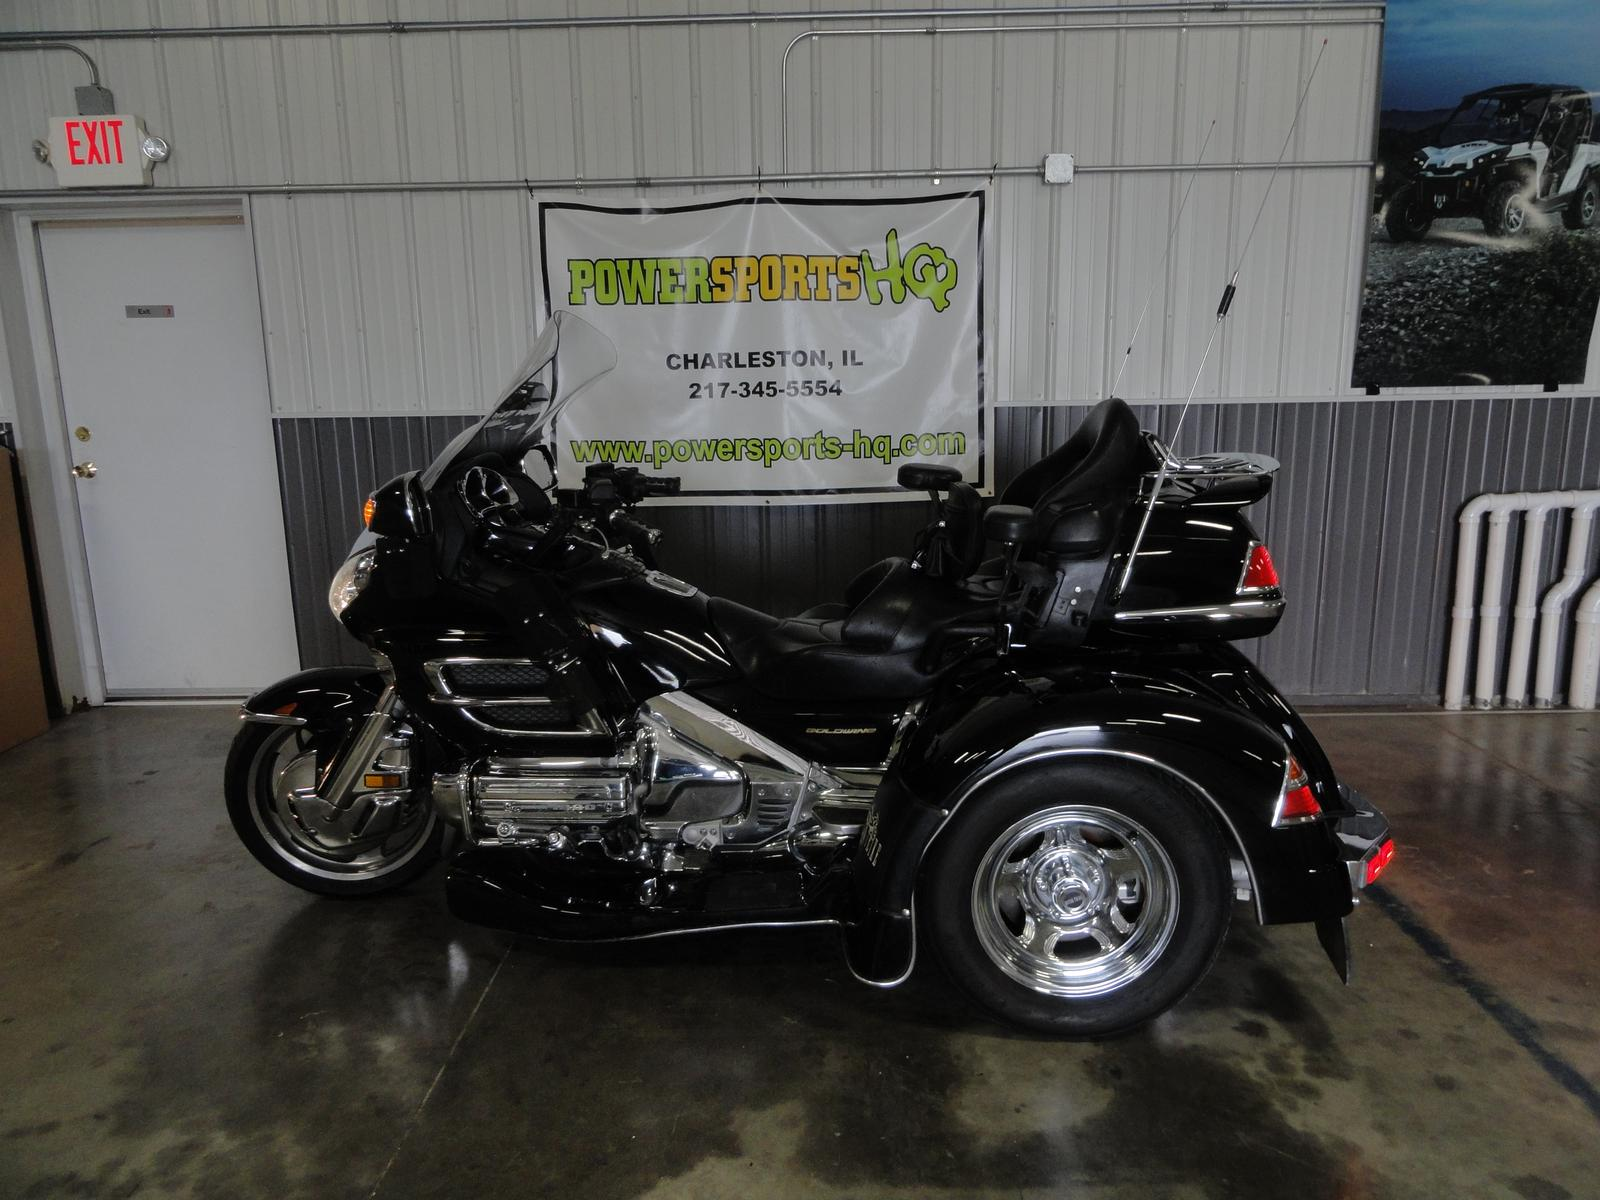 2002 Honda GOLDWING 1800 TRIKE, motorcycle listing